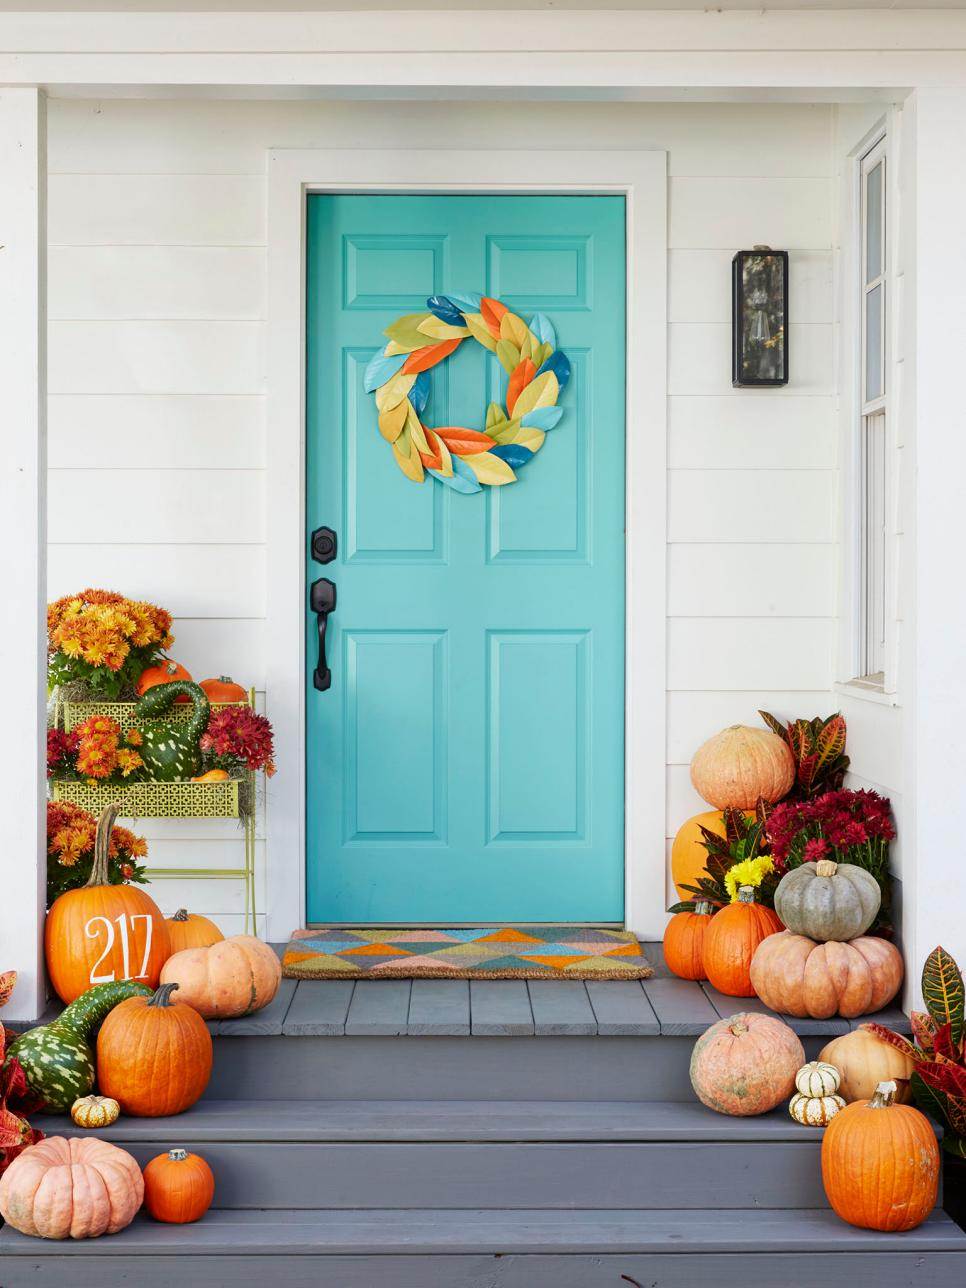 Our favorite fall decorating ideas hgtv for Thanksgiving home ideas